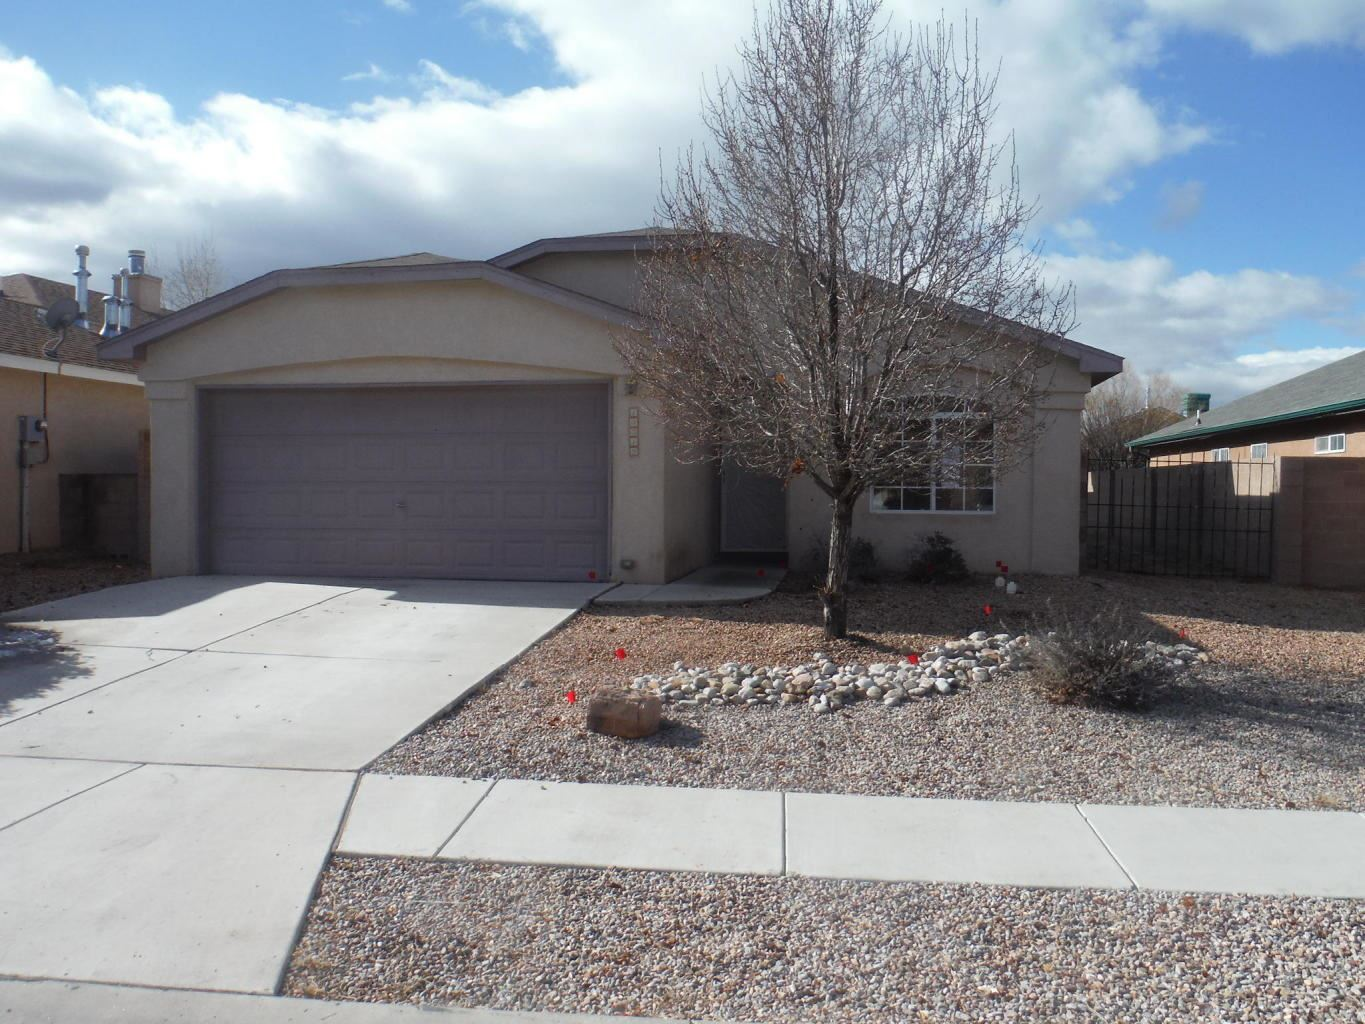 Photo of 10319 COUNTRY SAGE Drive NW, Albuquerque, NM 87114 (MLS # 980088)